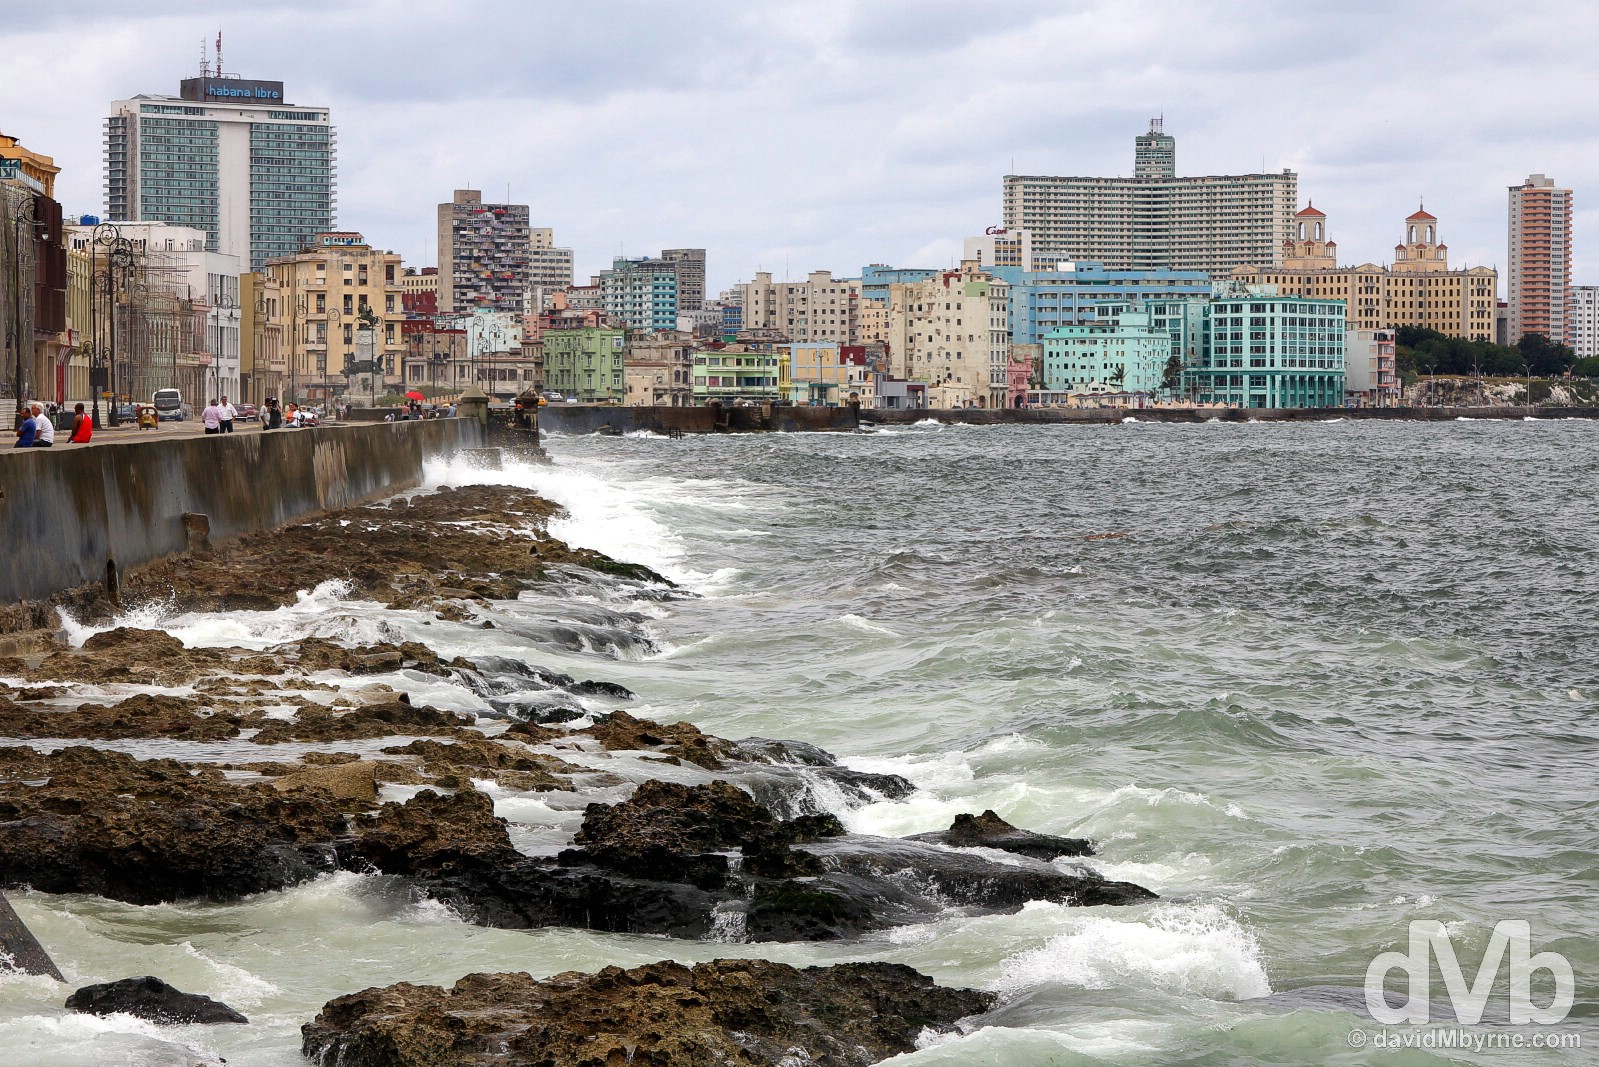 The wave-bashed Malecon in Havana, Cuba. May 1, 2015.